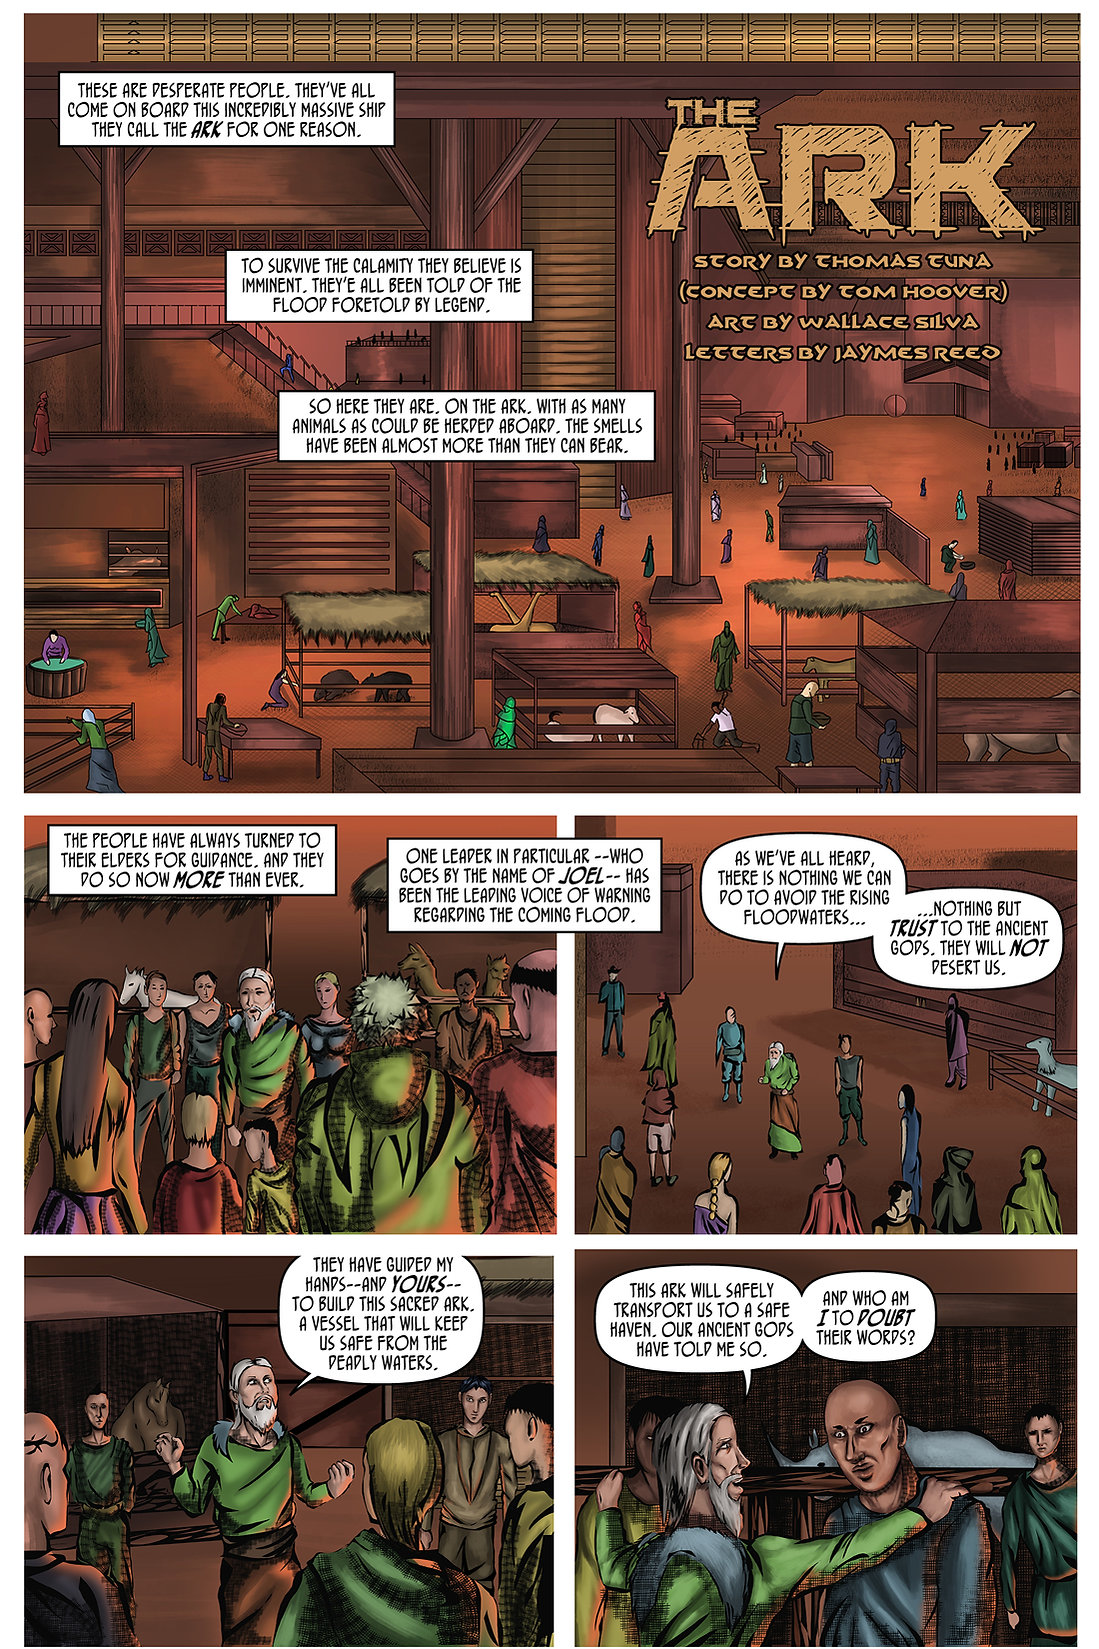 TheArk_Page 01.jpg